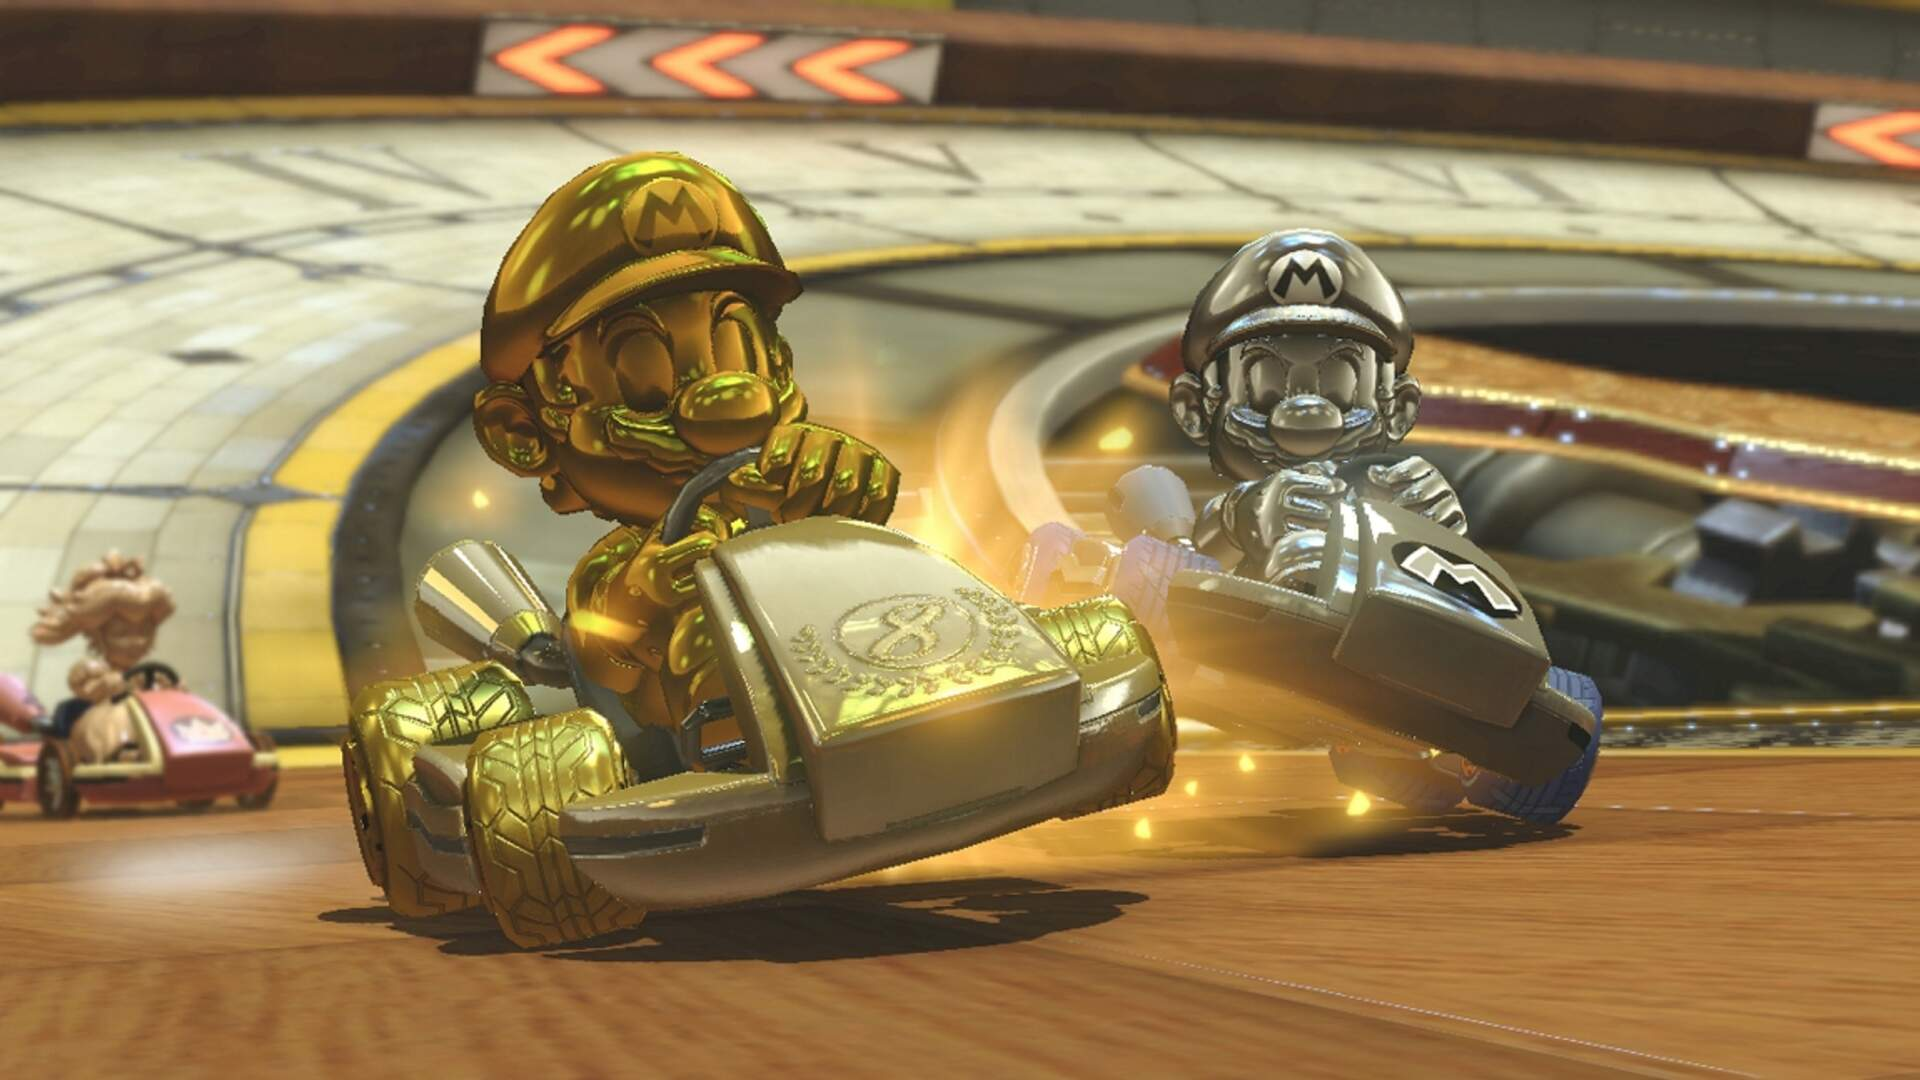 Mario Kart 8 Deluxe Unlockables, Characters and Tracks - Gold Mario and Gold Kart